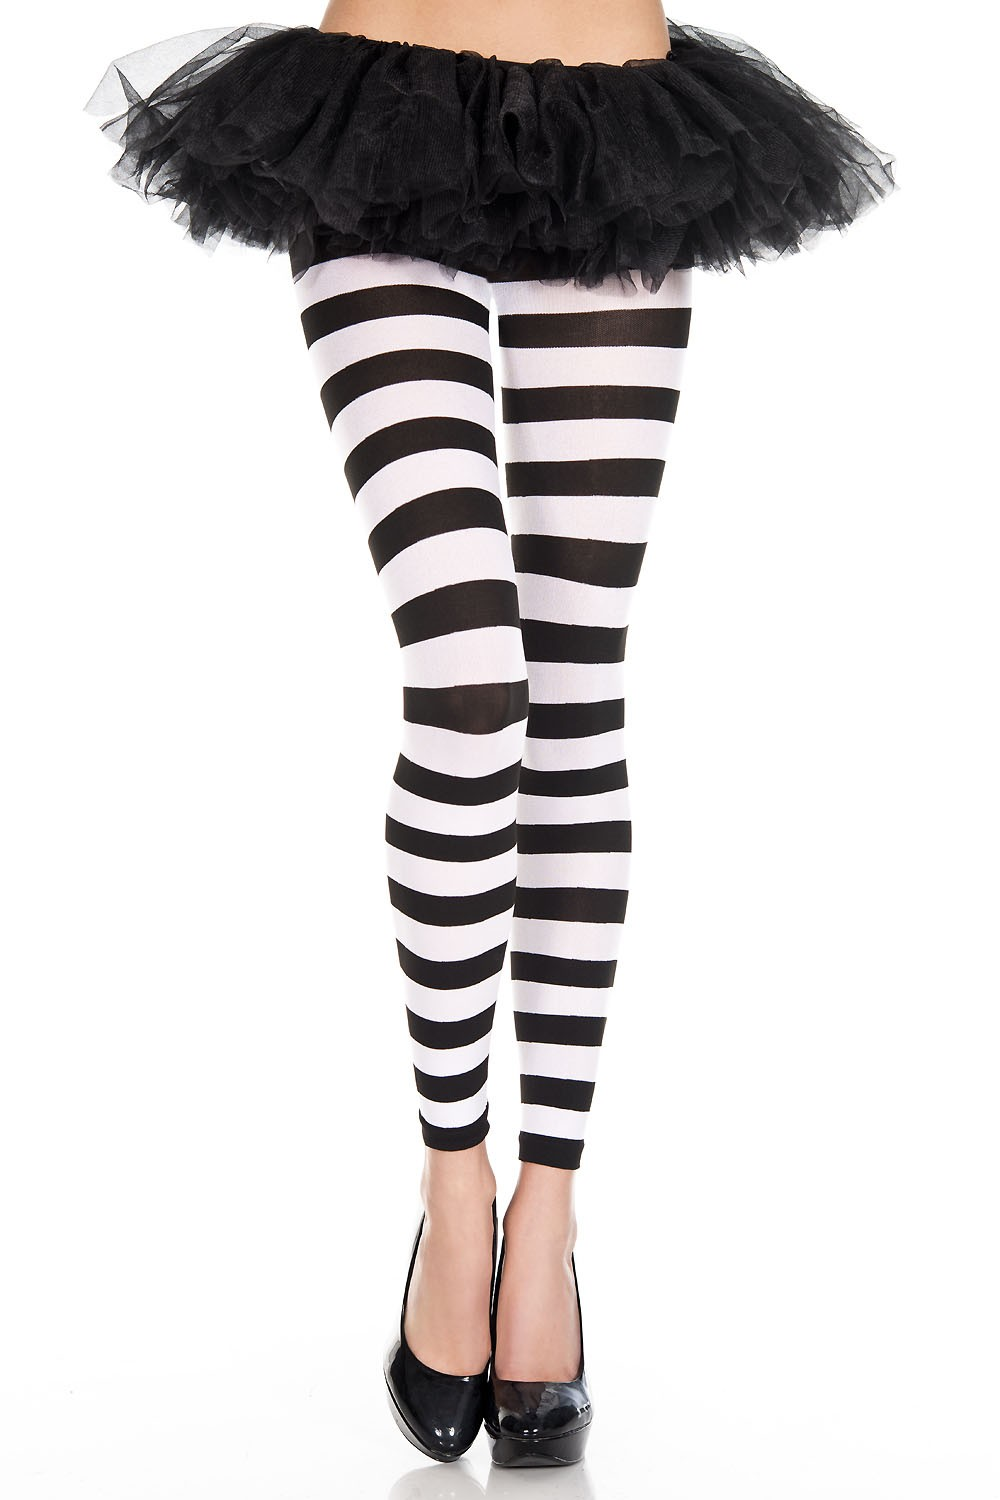 Adult Striped Leggings Black And White 5 99 The Costume Land